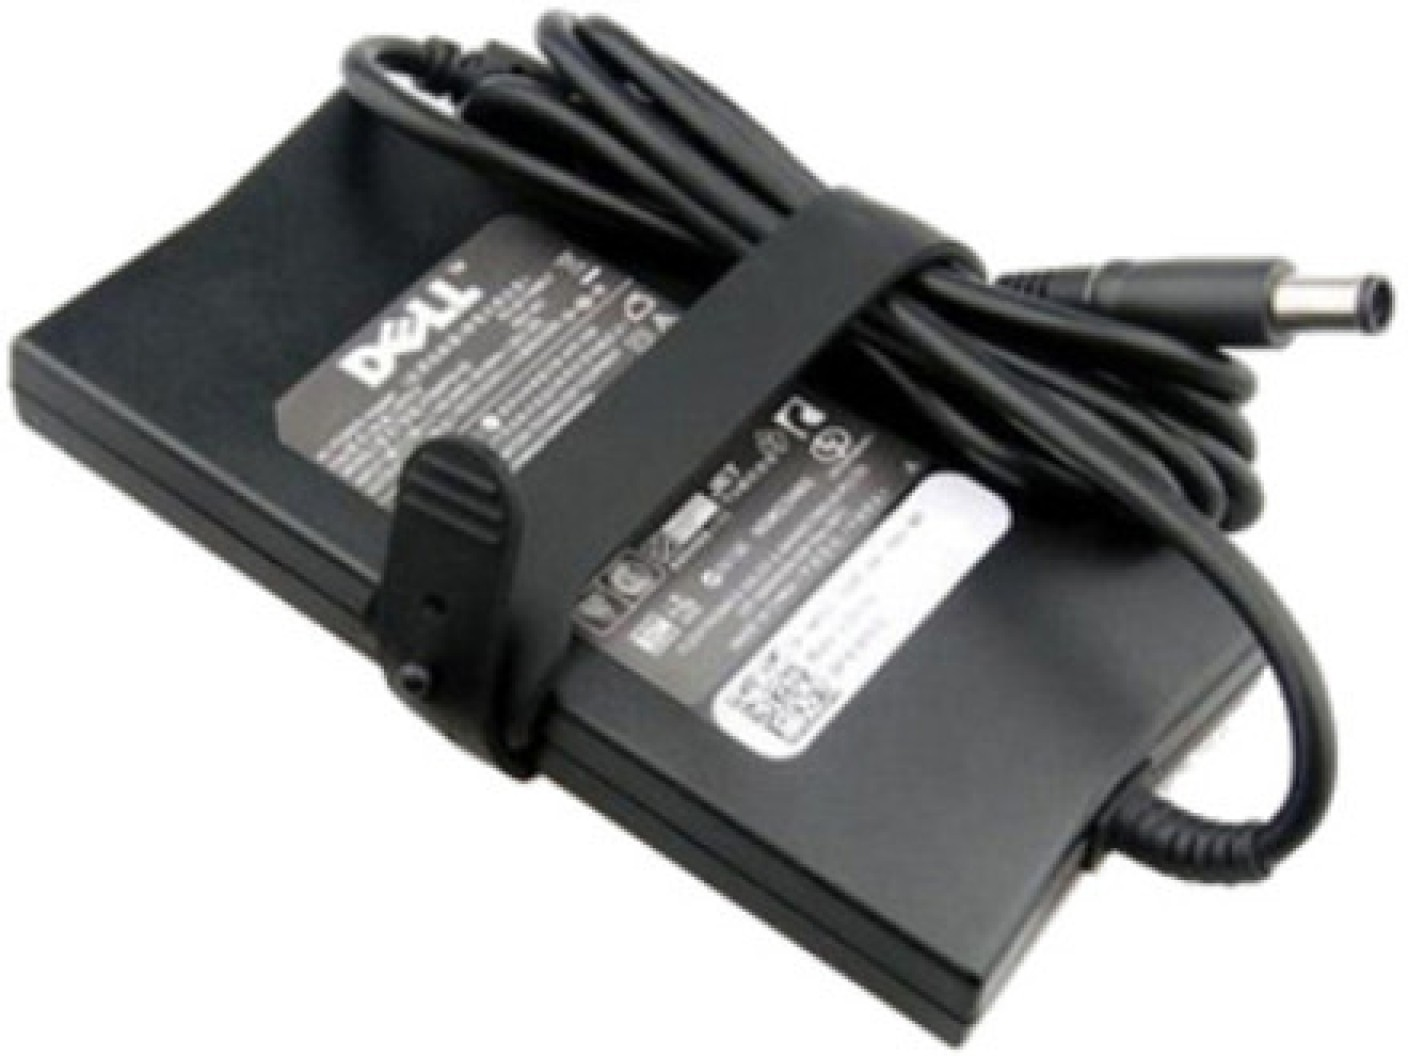 Dell 130w Adapter Without Power Cord Dell Flipkart Com